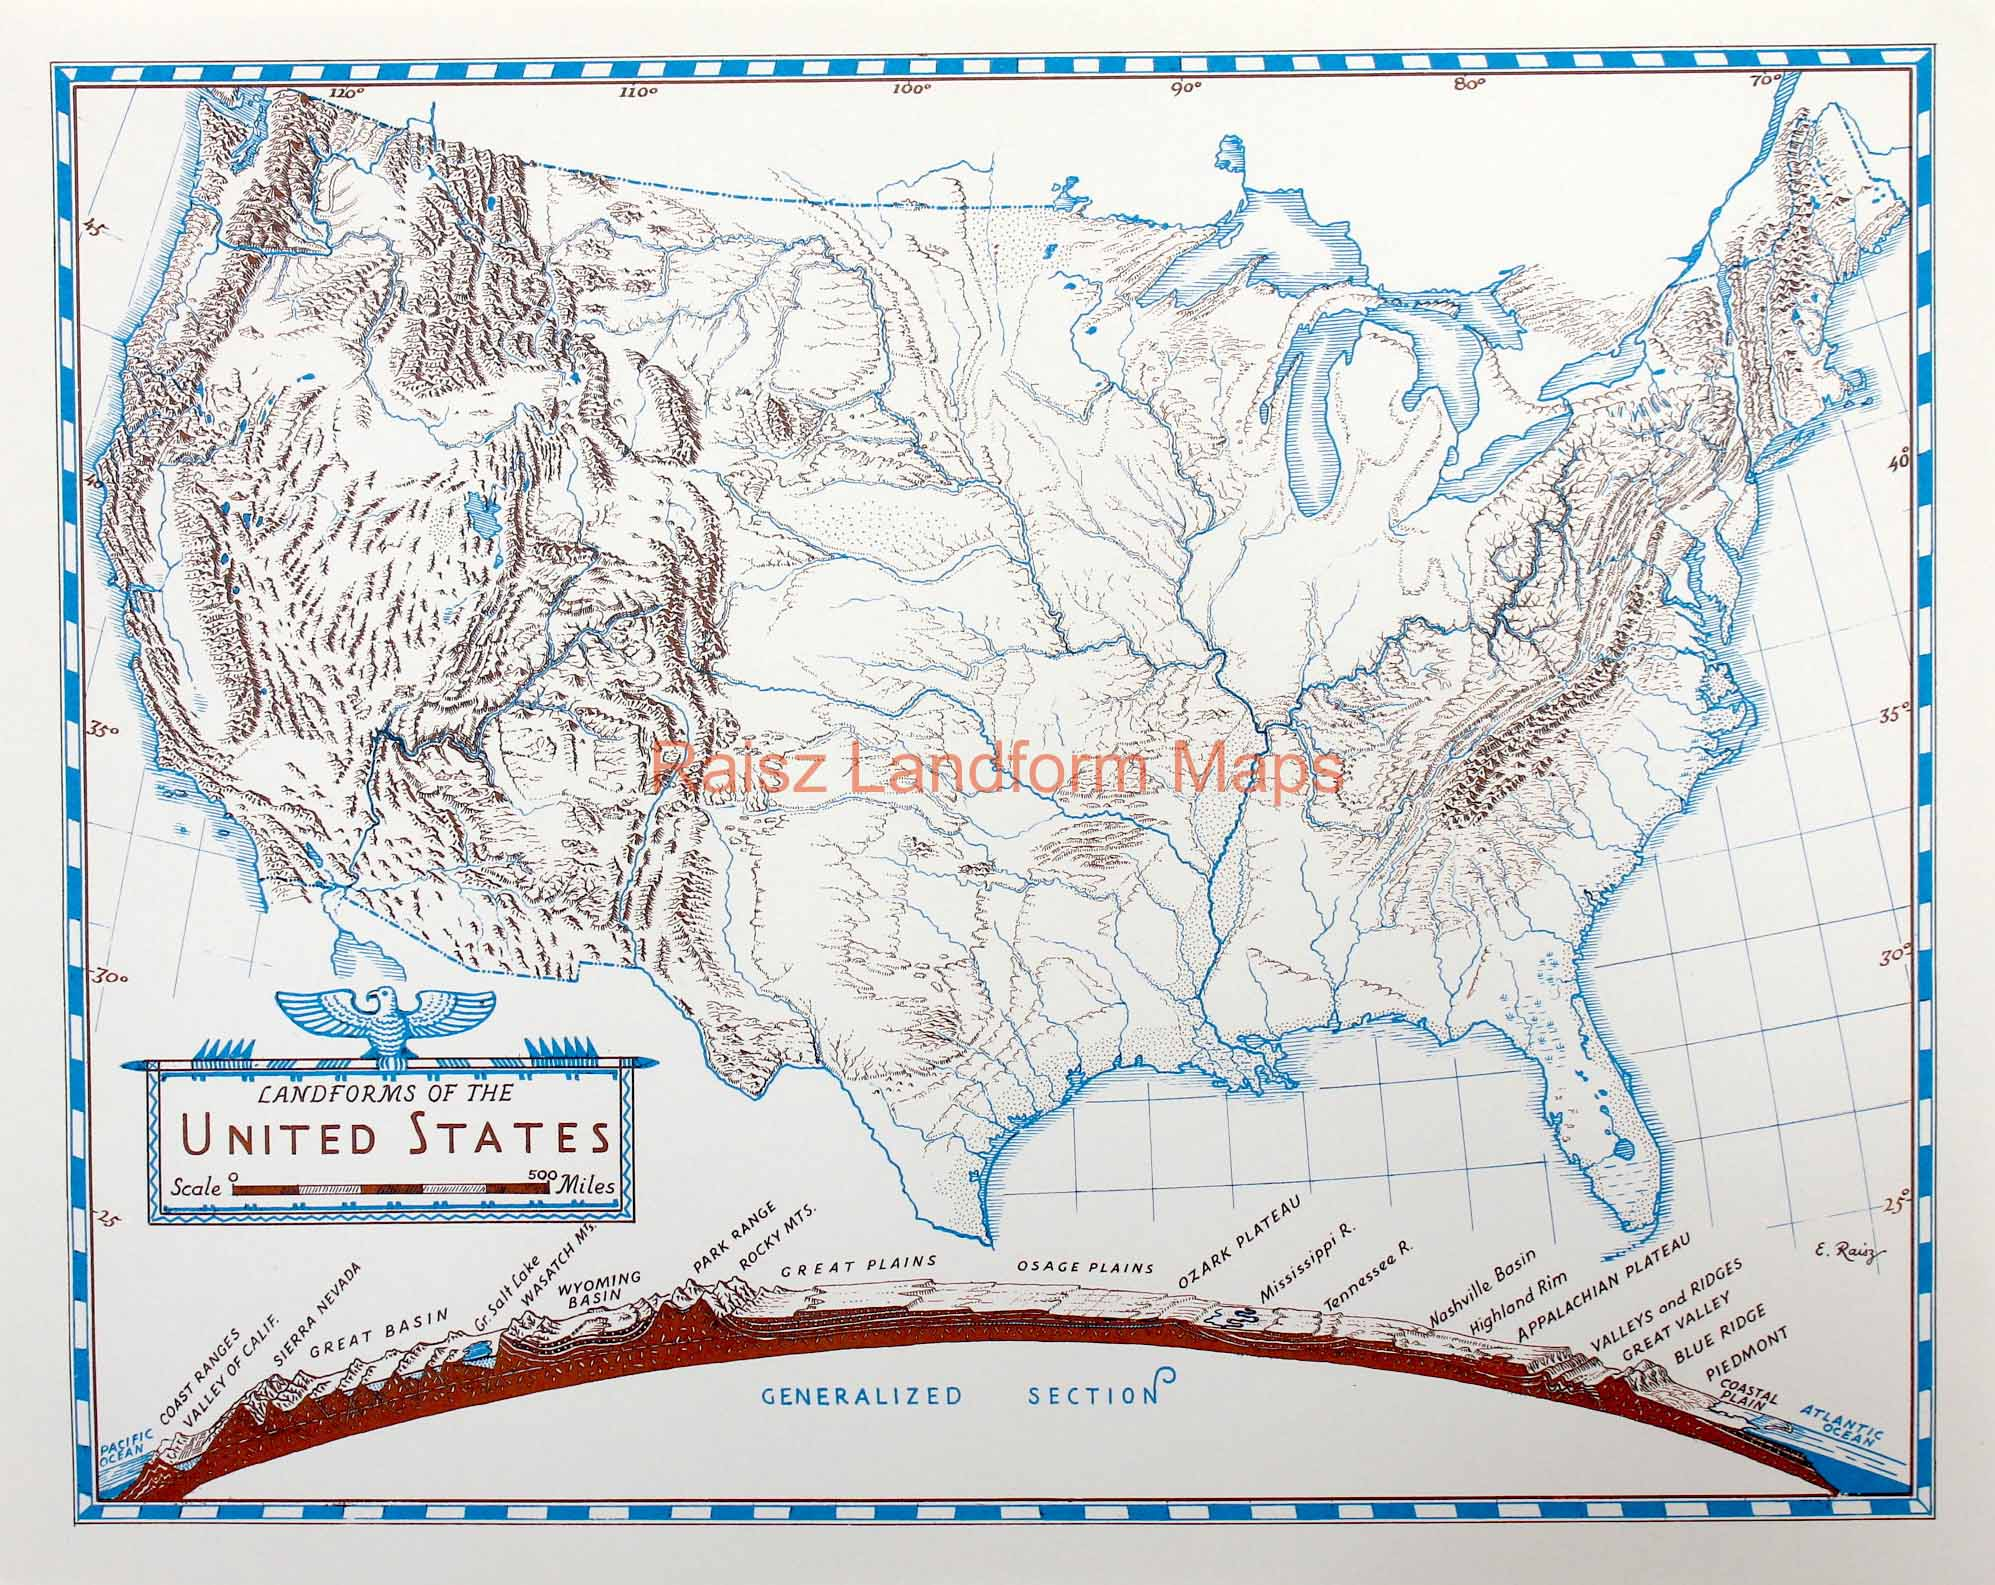 Landforms of the United States with a Generalized Section